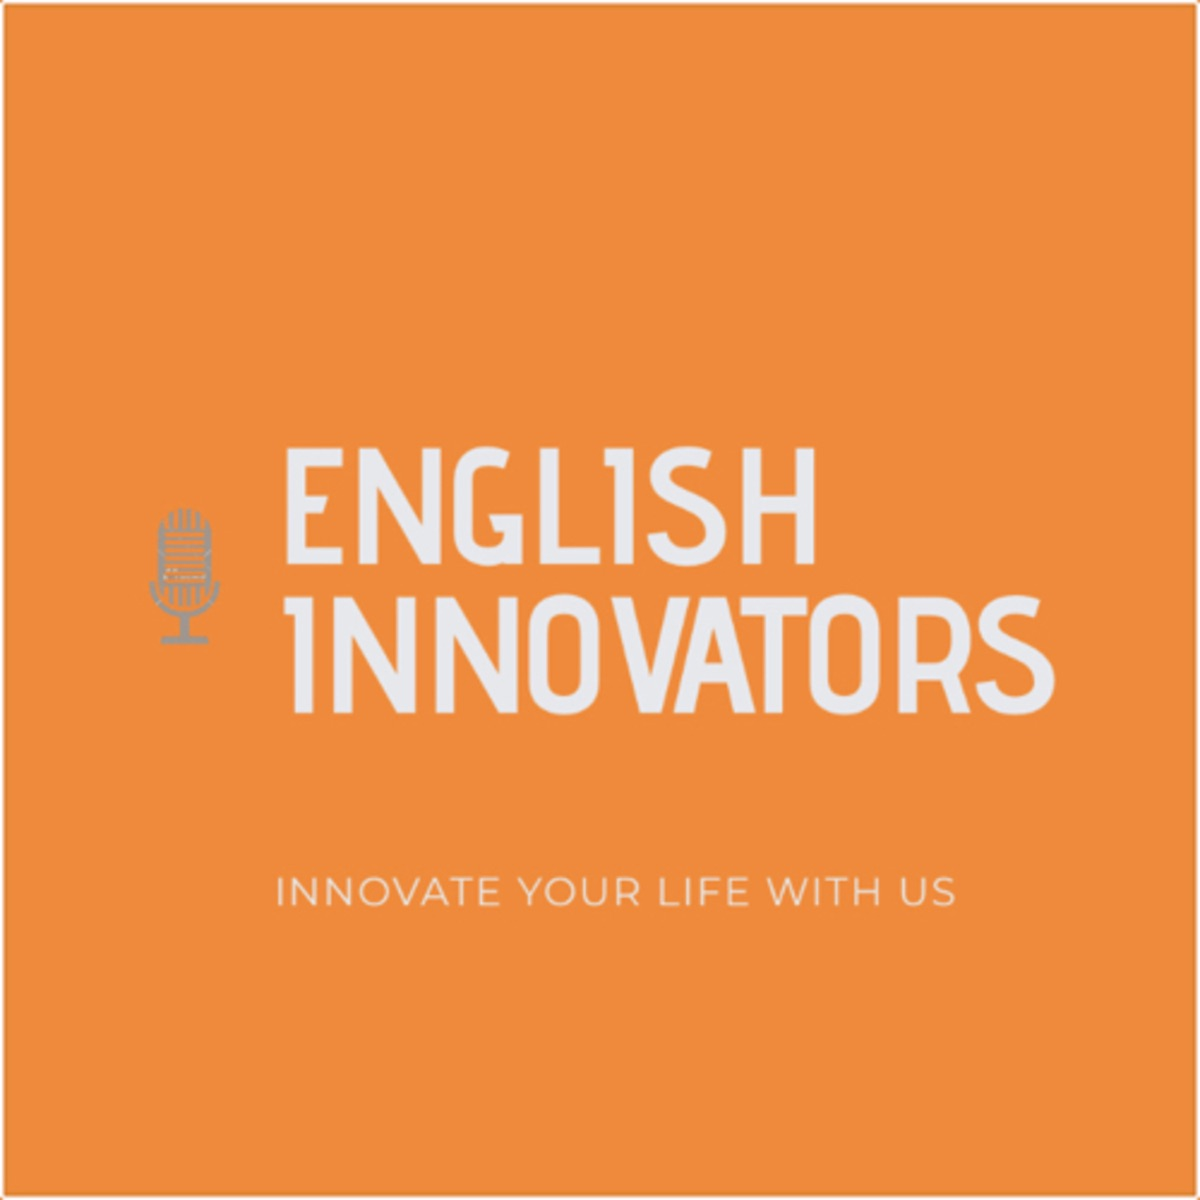 English Innovators presented by English Innovations